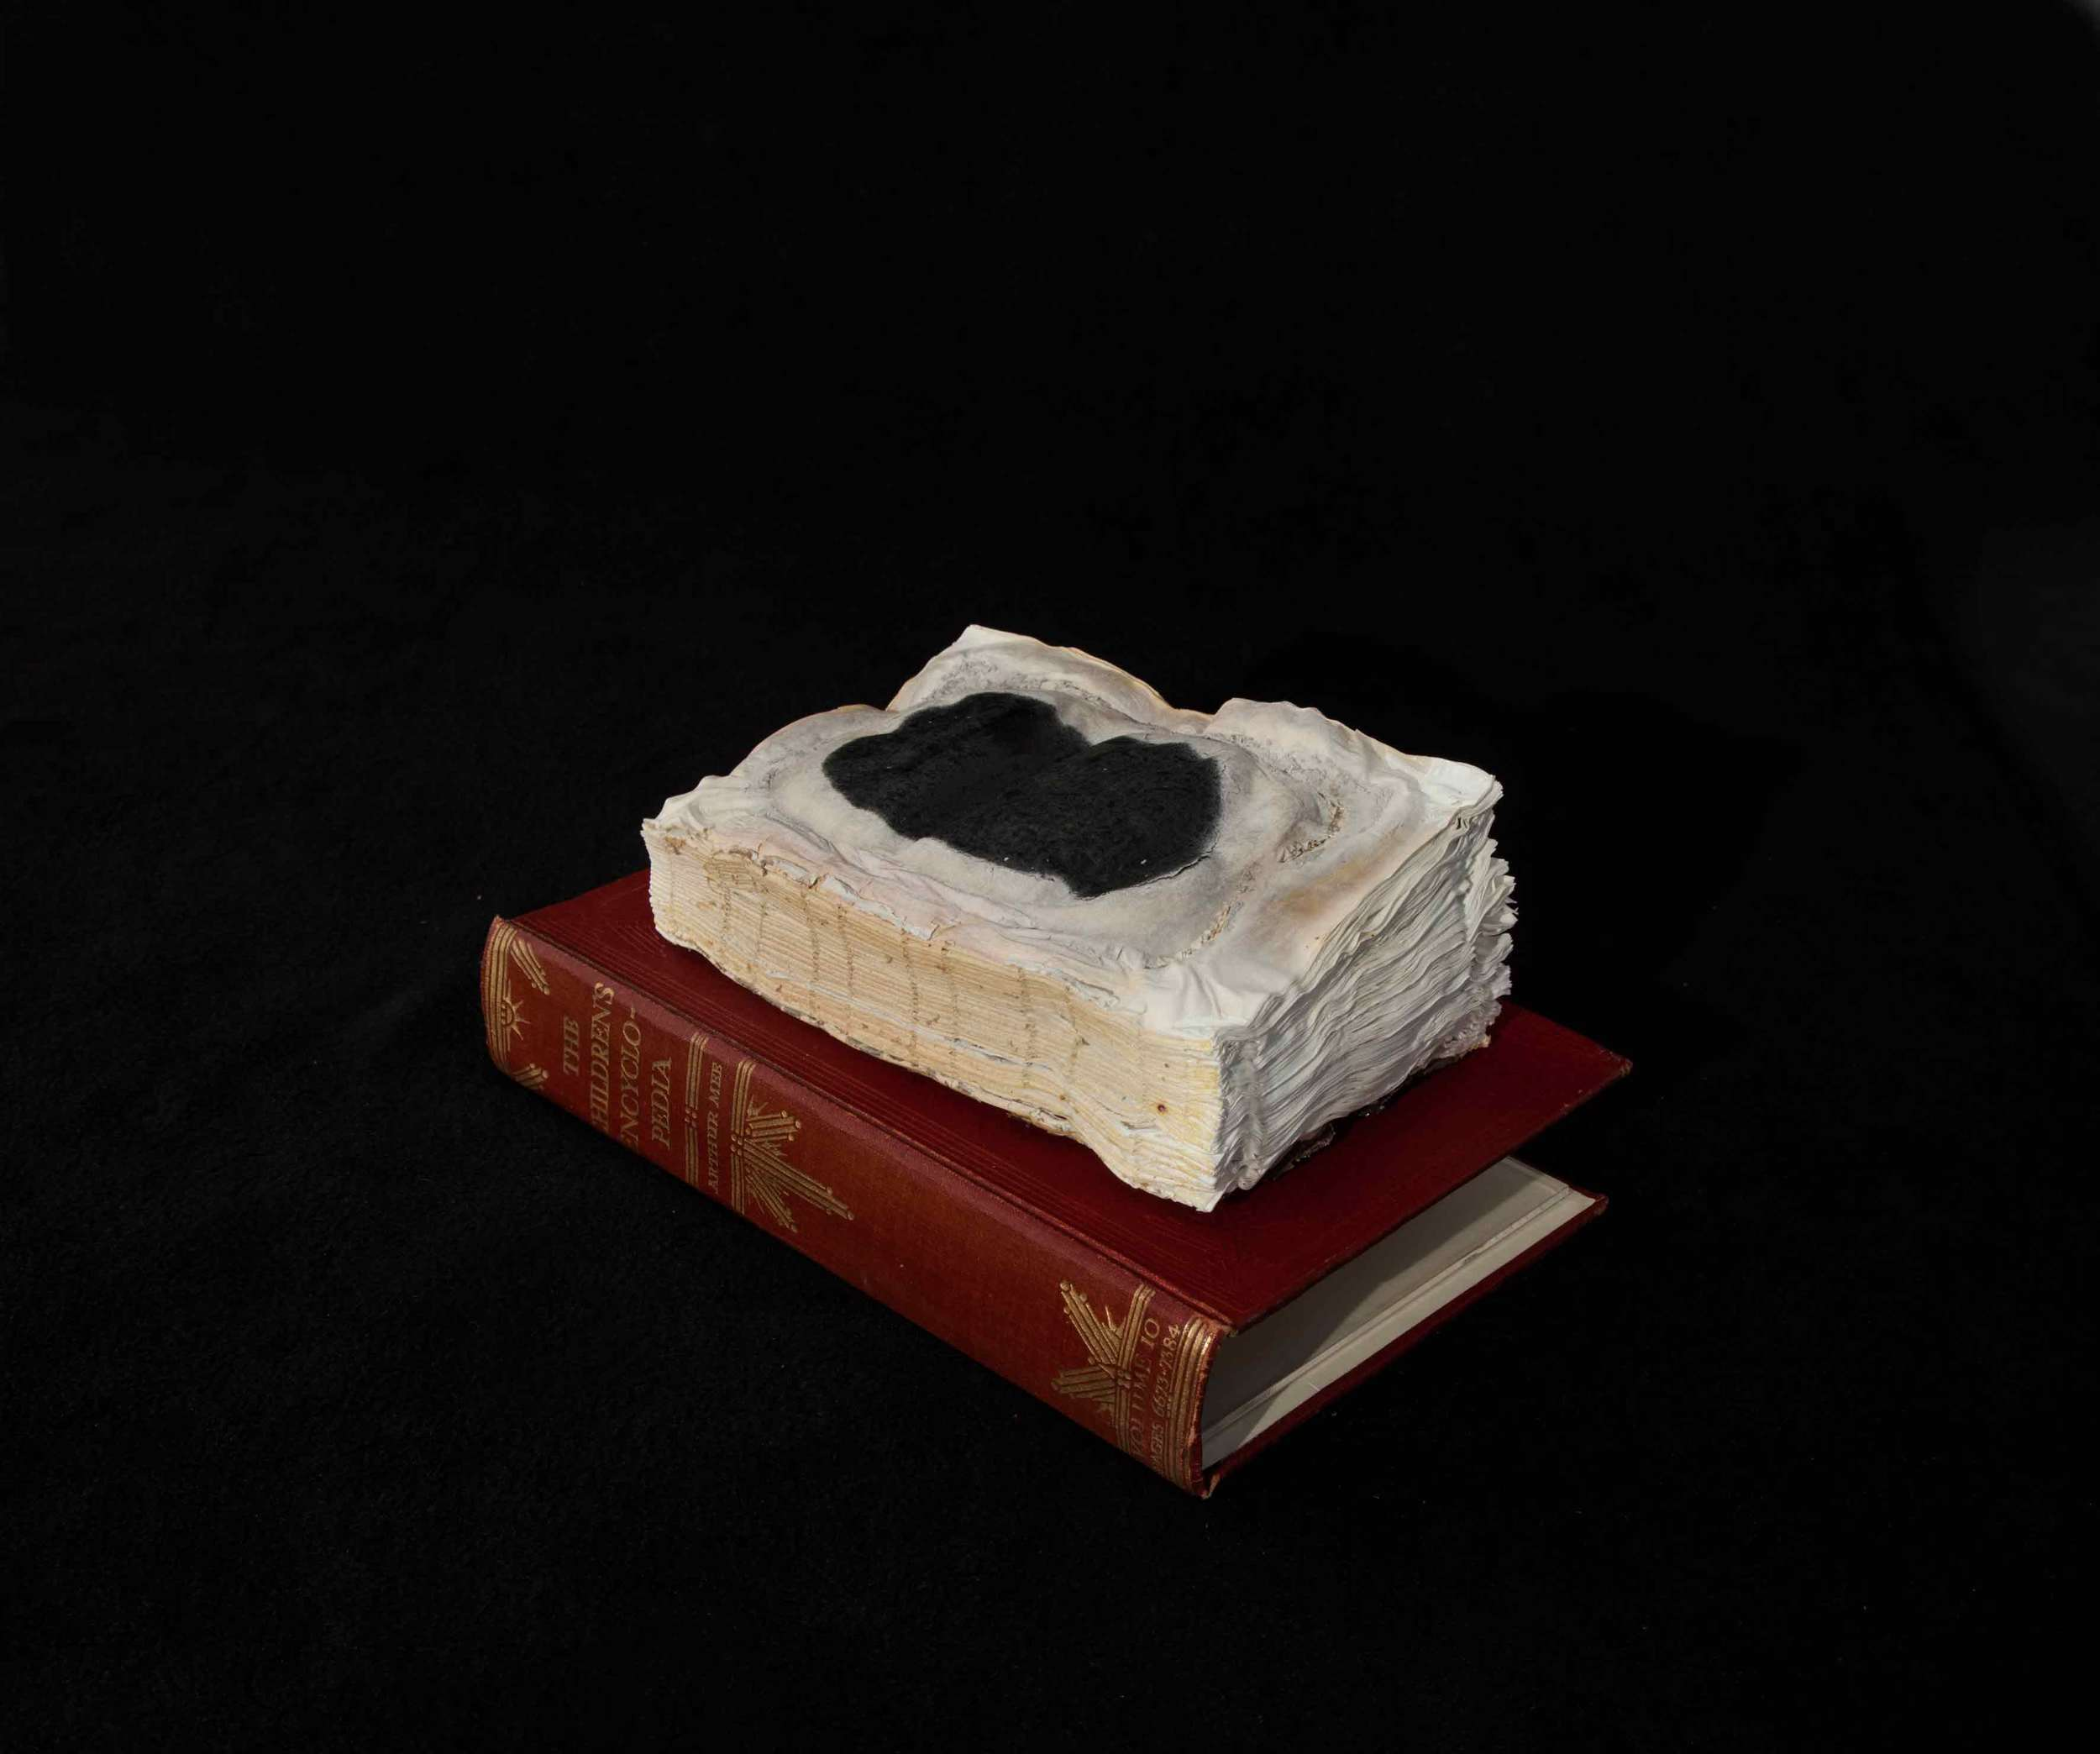 CYRUS TANG   Children's Encyclopaedia Vol 10  2016 Cremated book ashes, book cover and acrylic case 29 x 21 x 21 cm